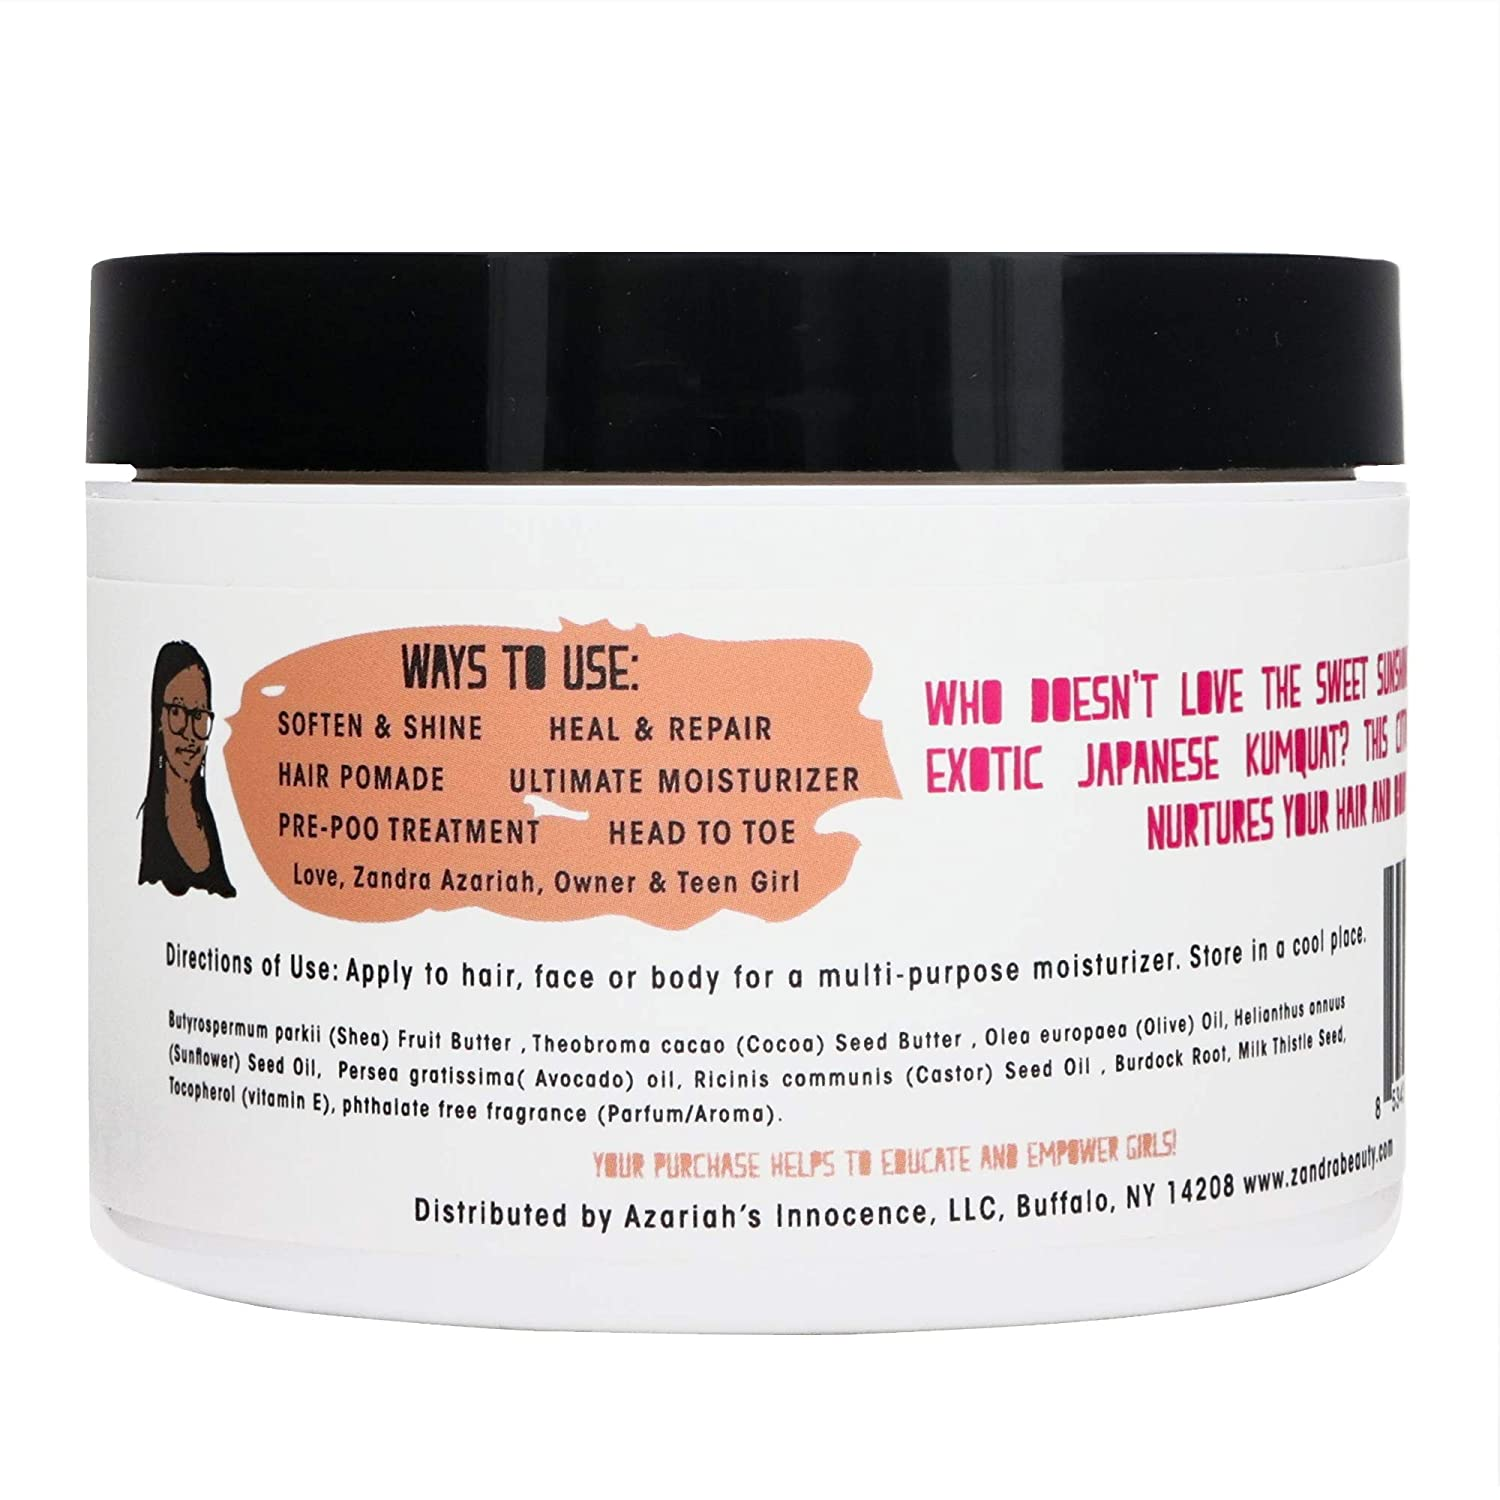 Zandra Hair Body Souffle – Solid to Liquid Oil For Skin, Hair and Scalp. Unrefined Shea Butter, Olive, Sunflower, Avocado and Castor Oil – JAPANESE KUMQUAT 8 oz